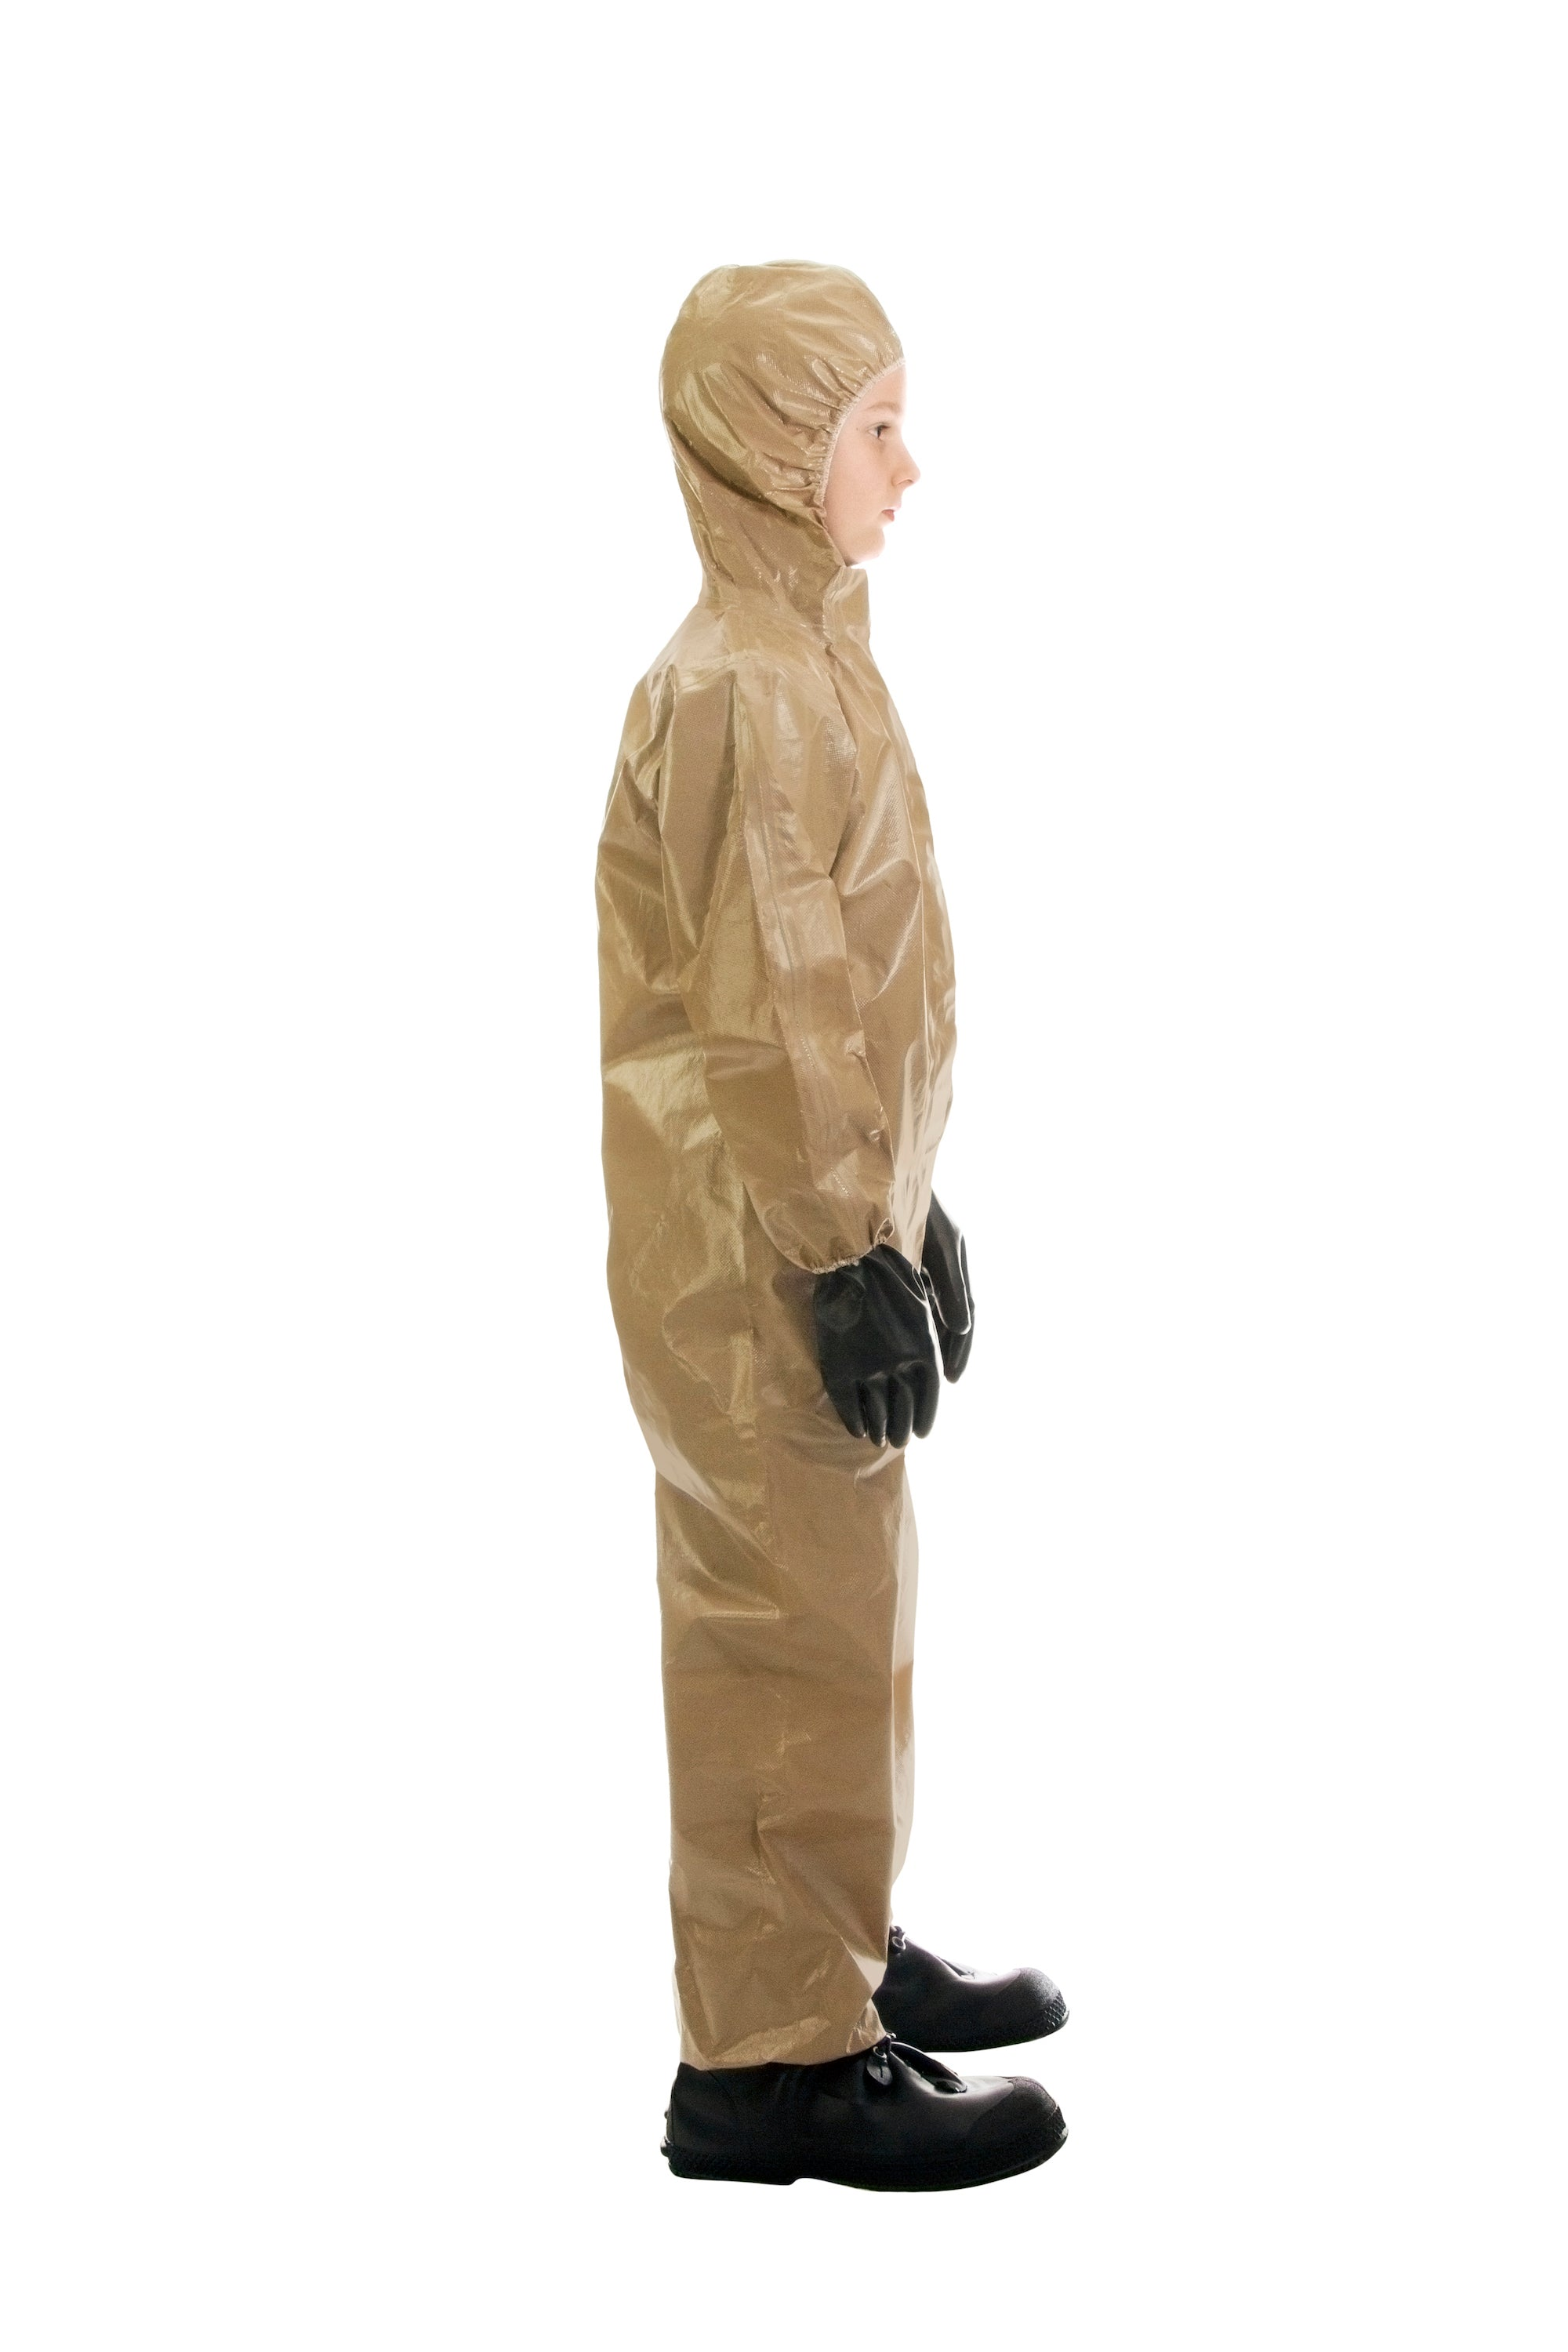 Side view of a child wearing the HAZ-SUIT HAZMAT Suit